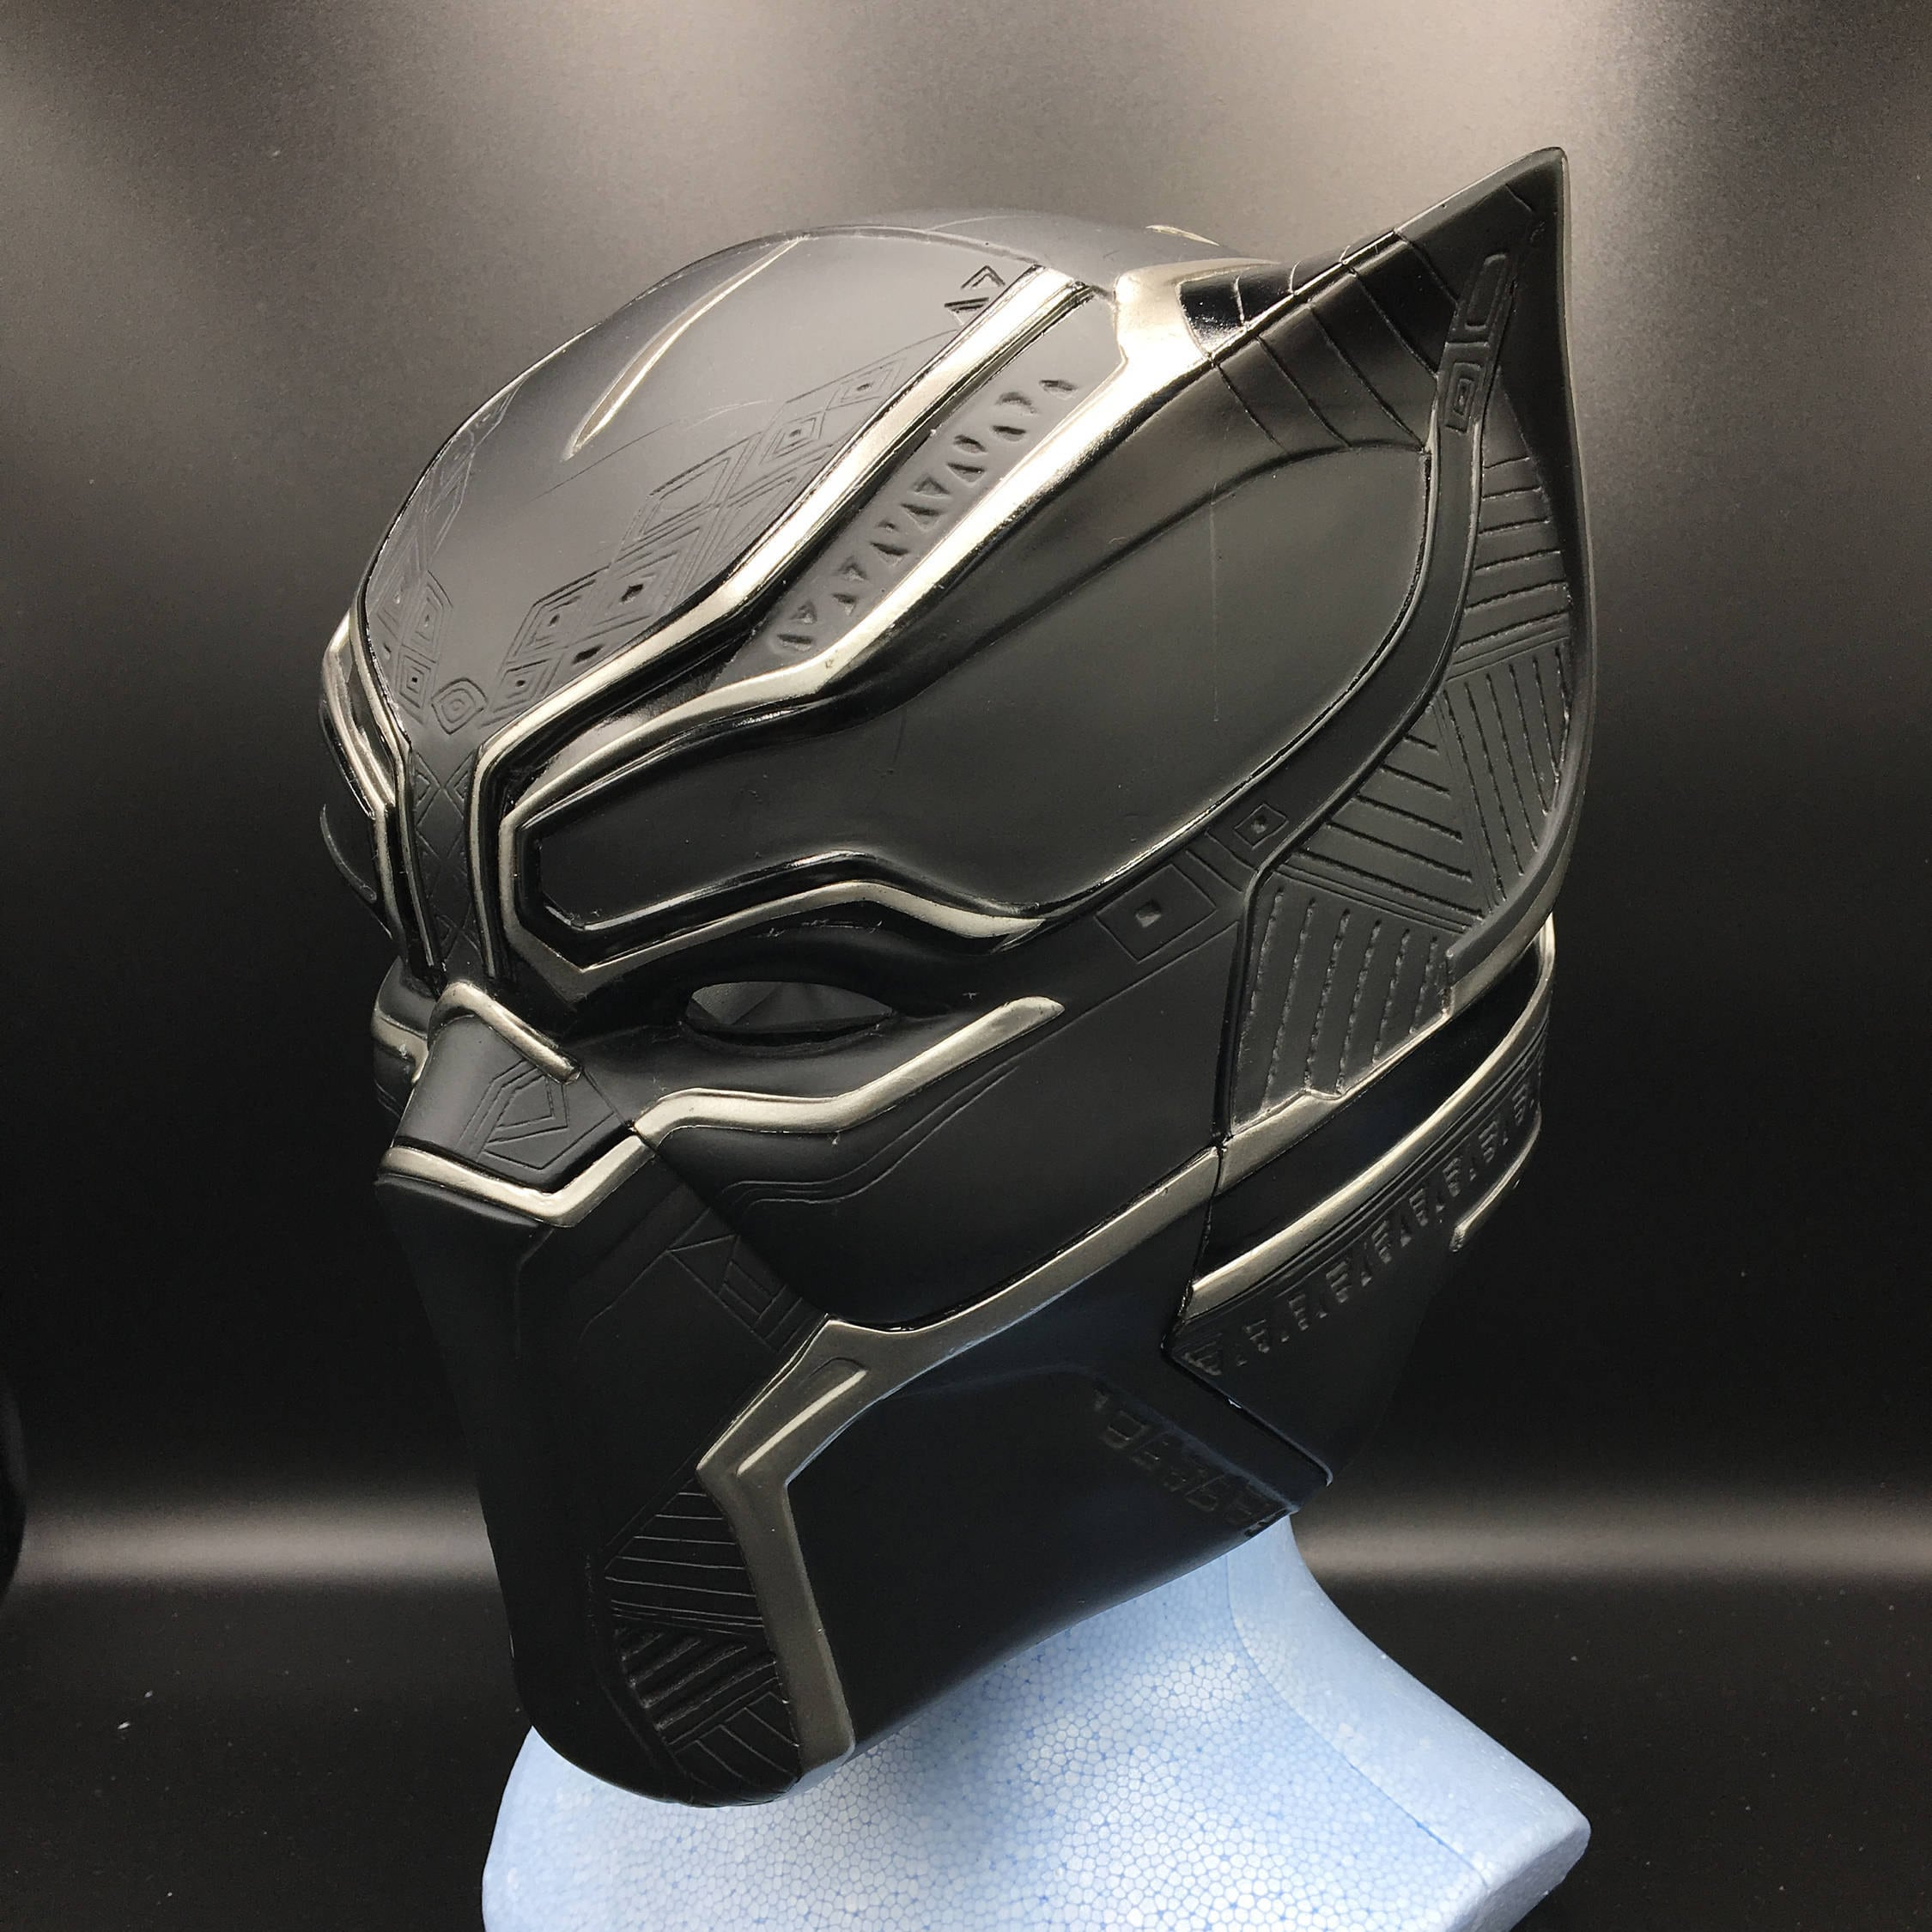 Black panther helmet Life-size scale fully pattern detail  b57a55db4fd6